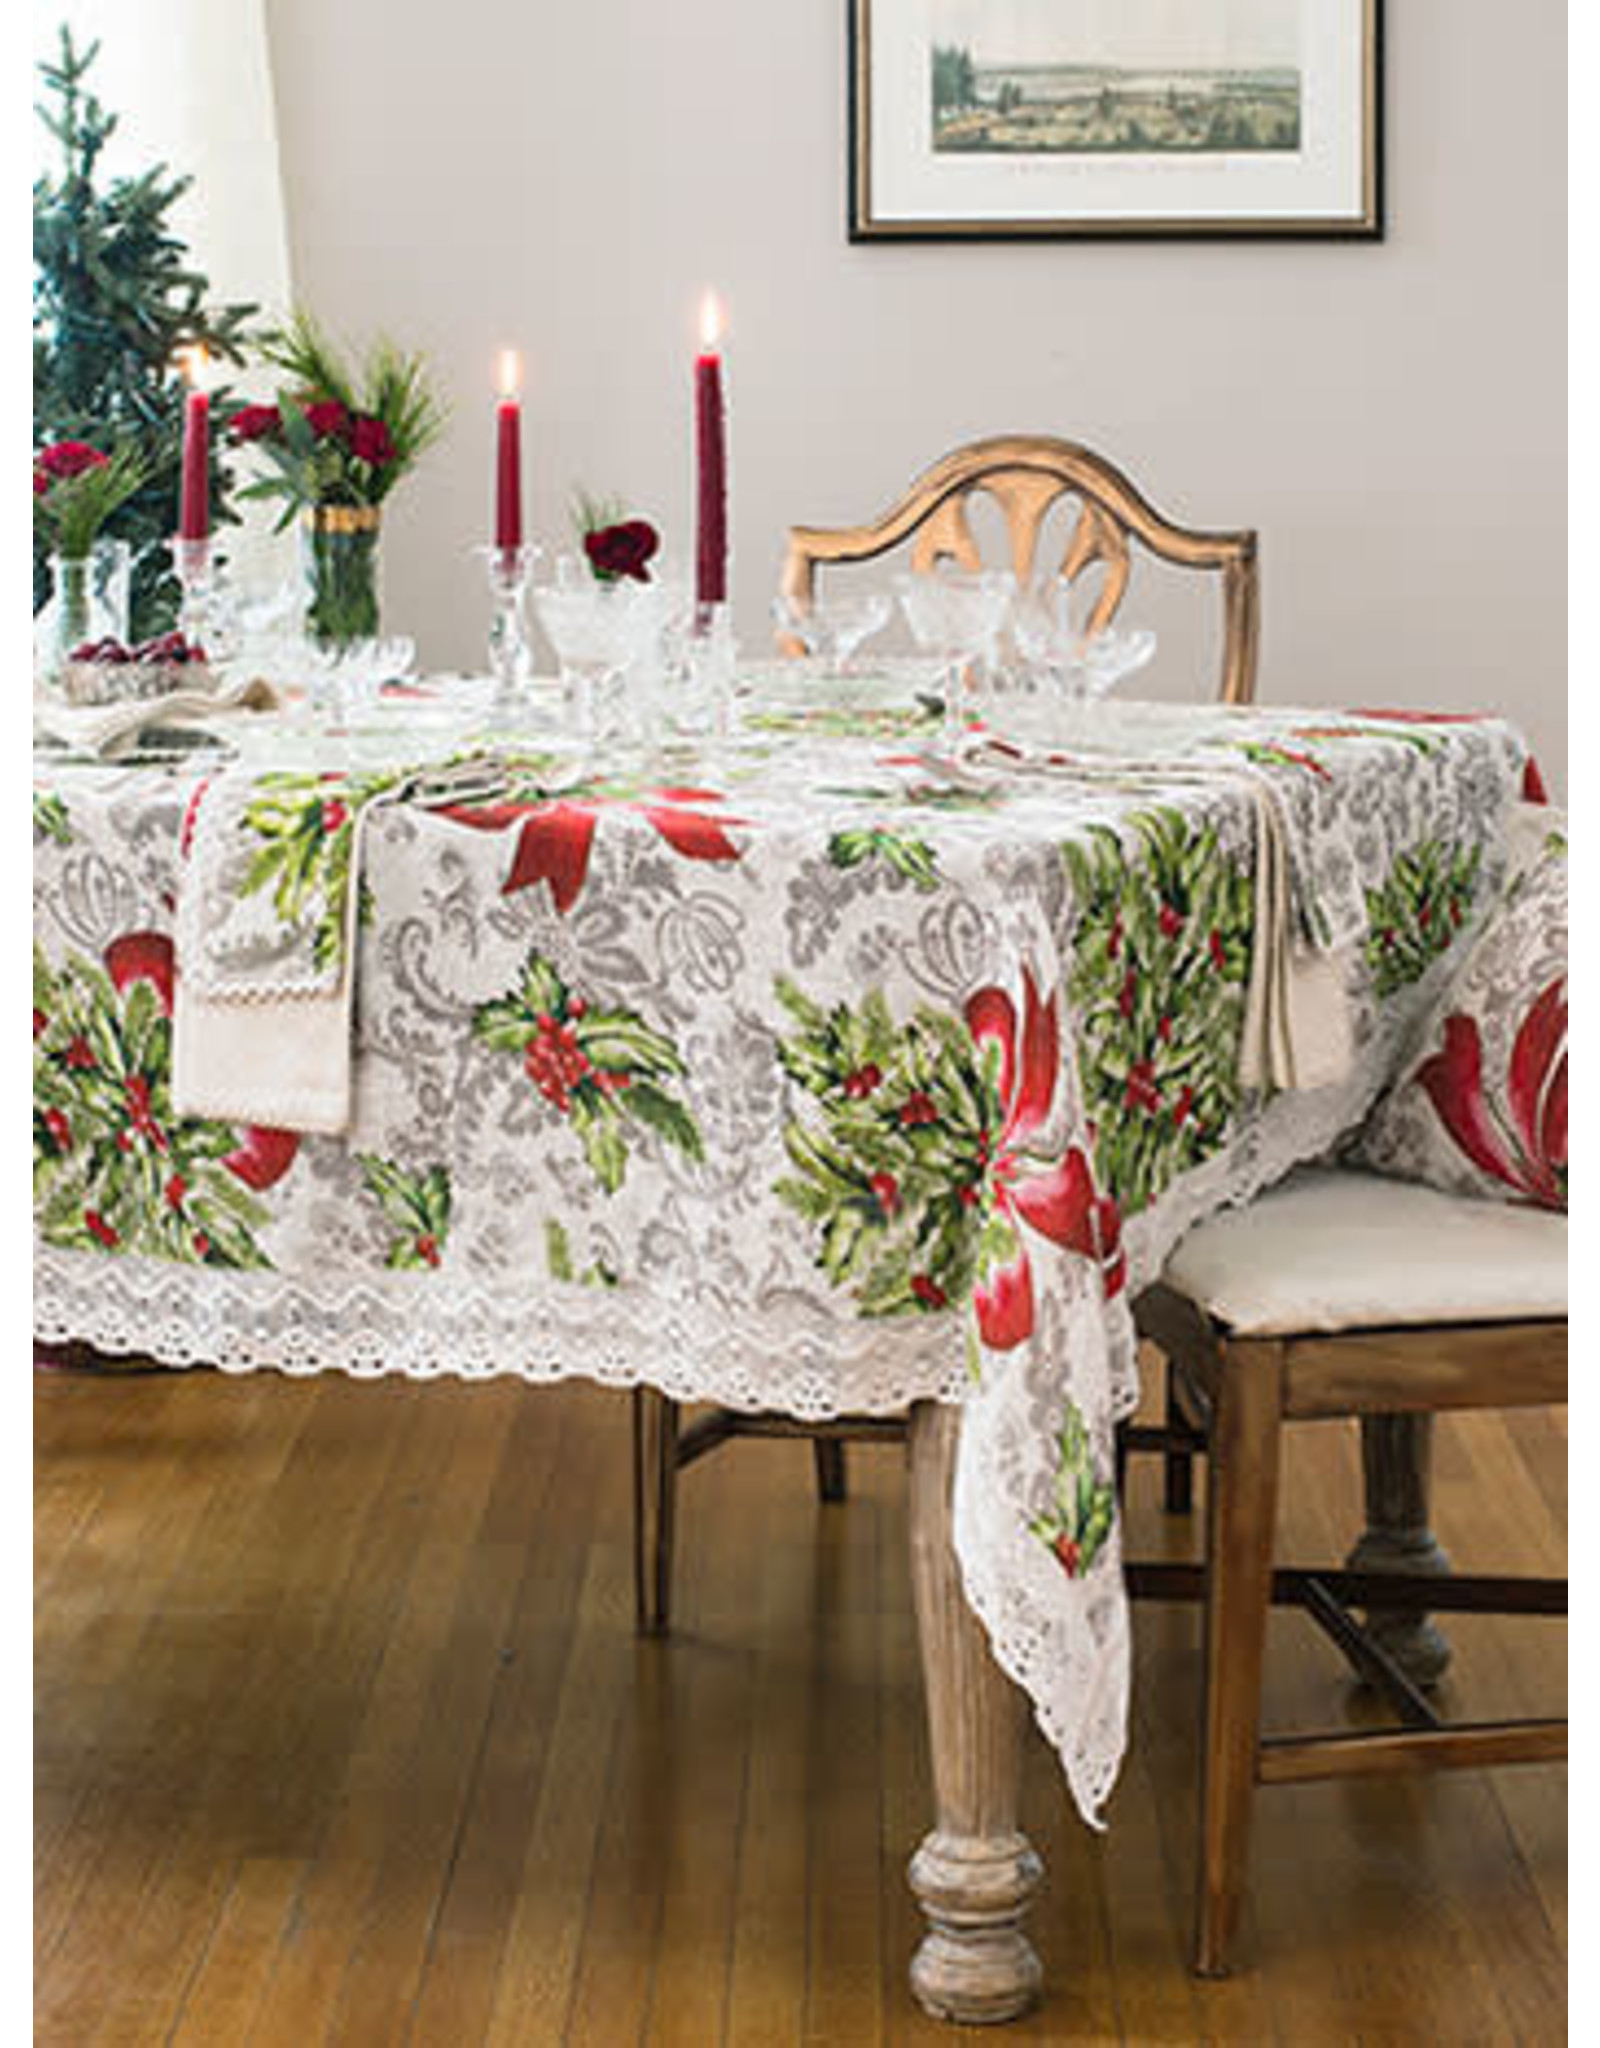 April Cornell April Cornell Deck the Holly Tablecloth 54x54